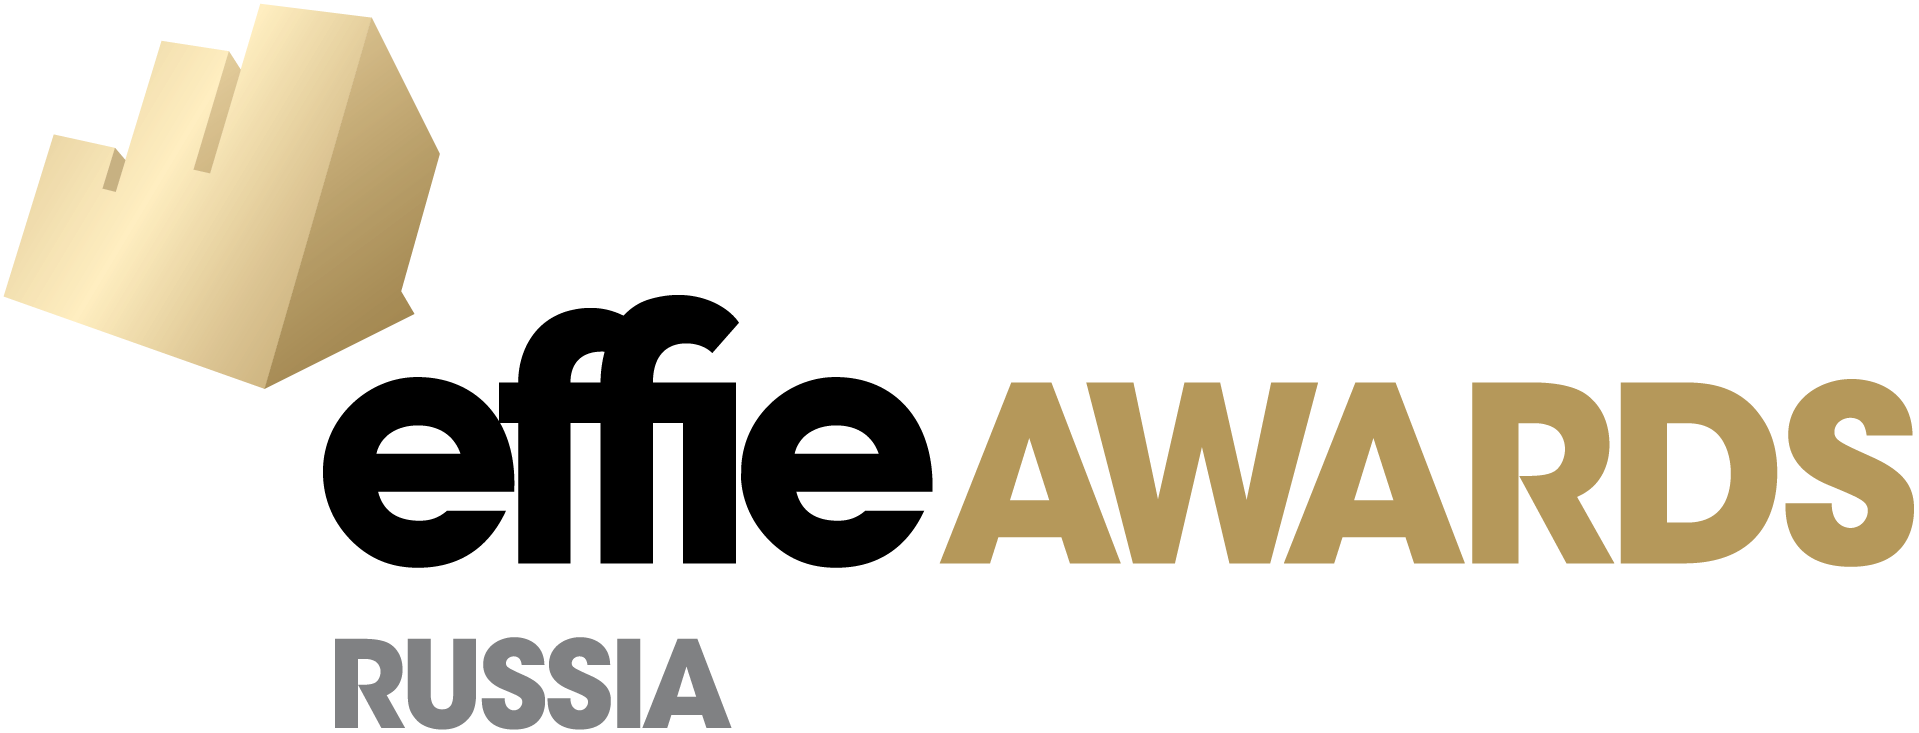 https://effie.ru/media/mqylkxyk/effie-russia_awards-logo-4color.png